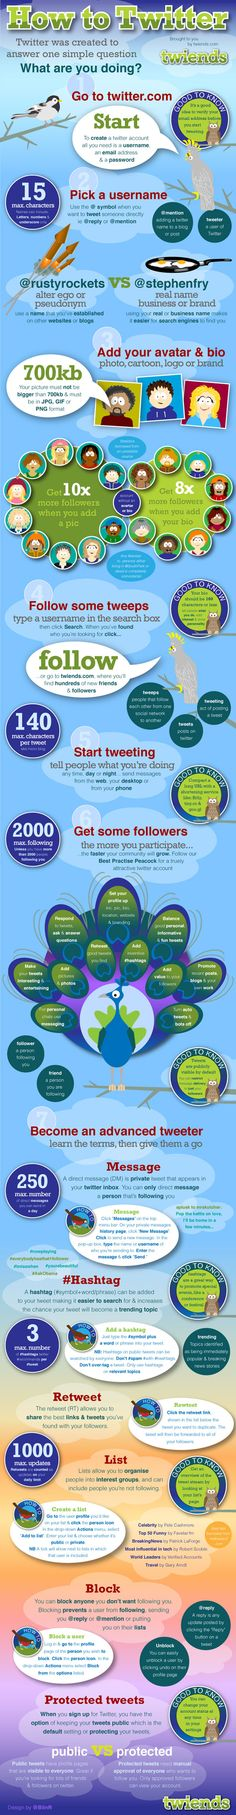 Tags: #twitter #engagement #beginners